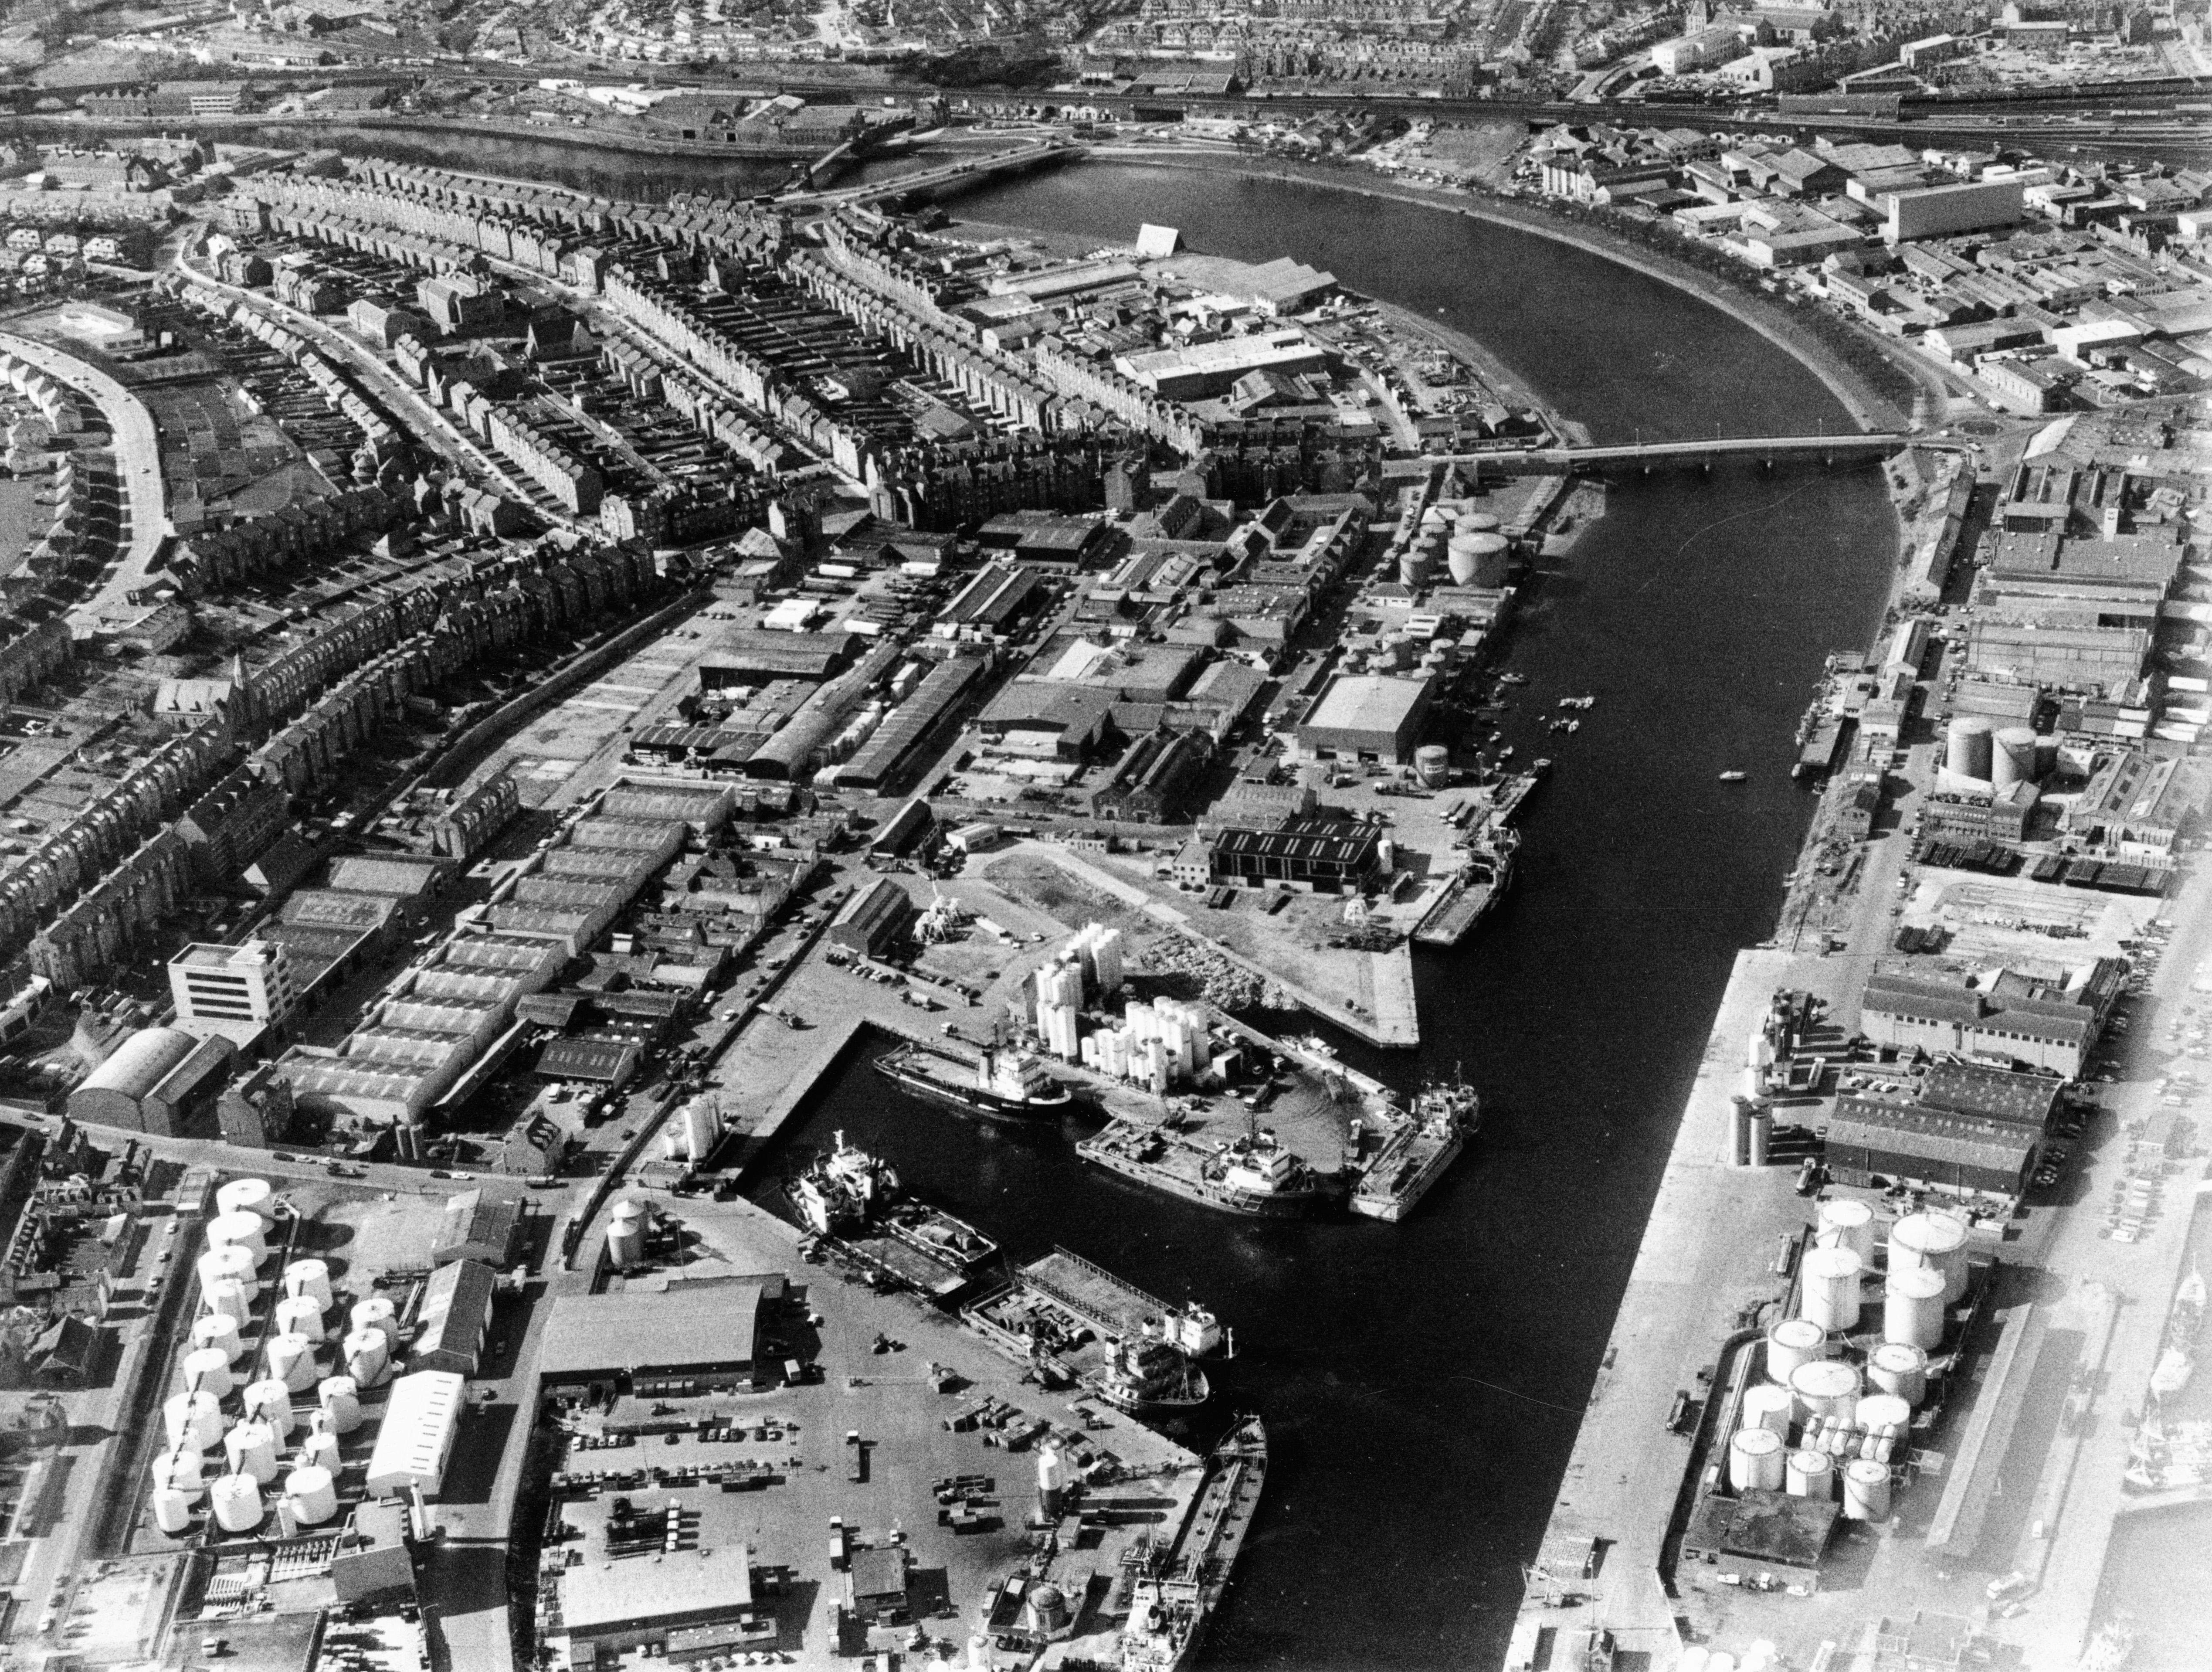 An aerial view of the Torry taken in 1986